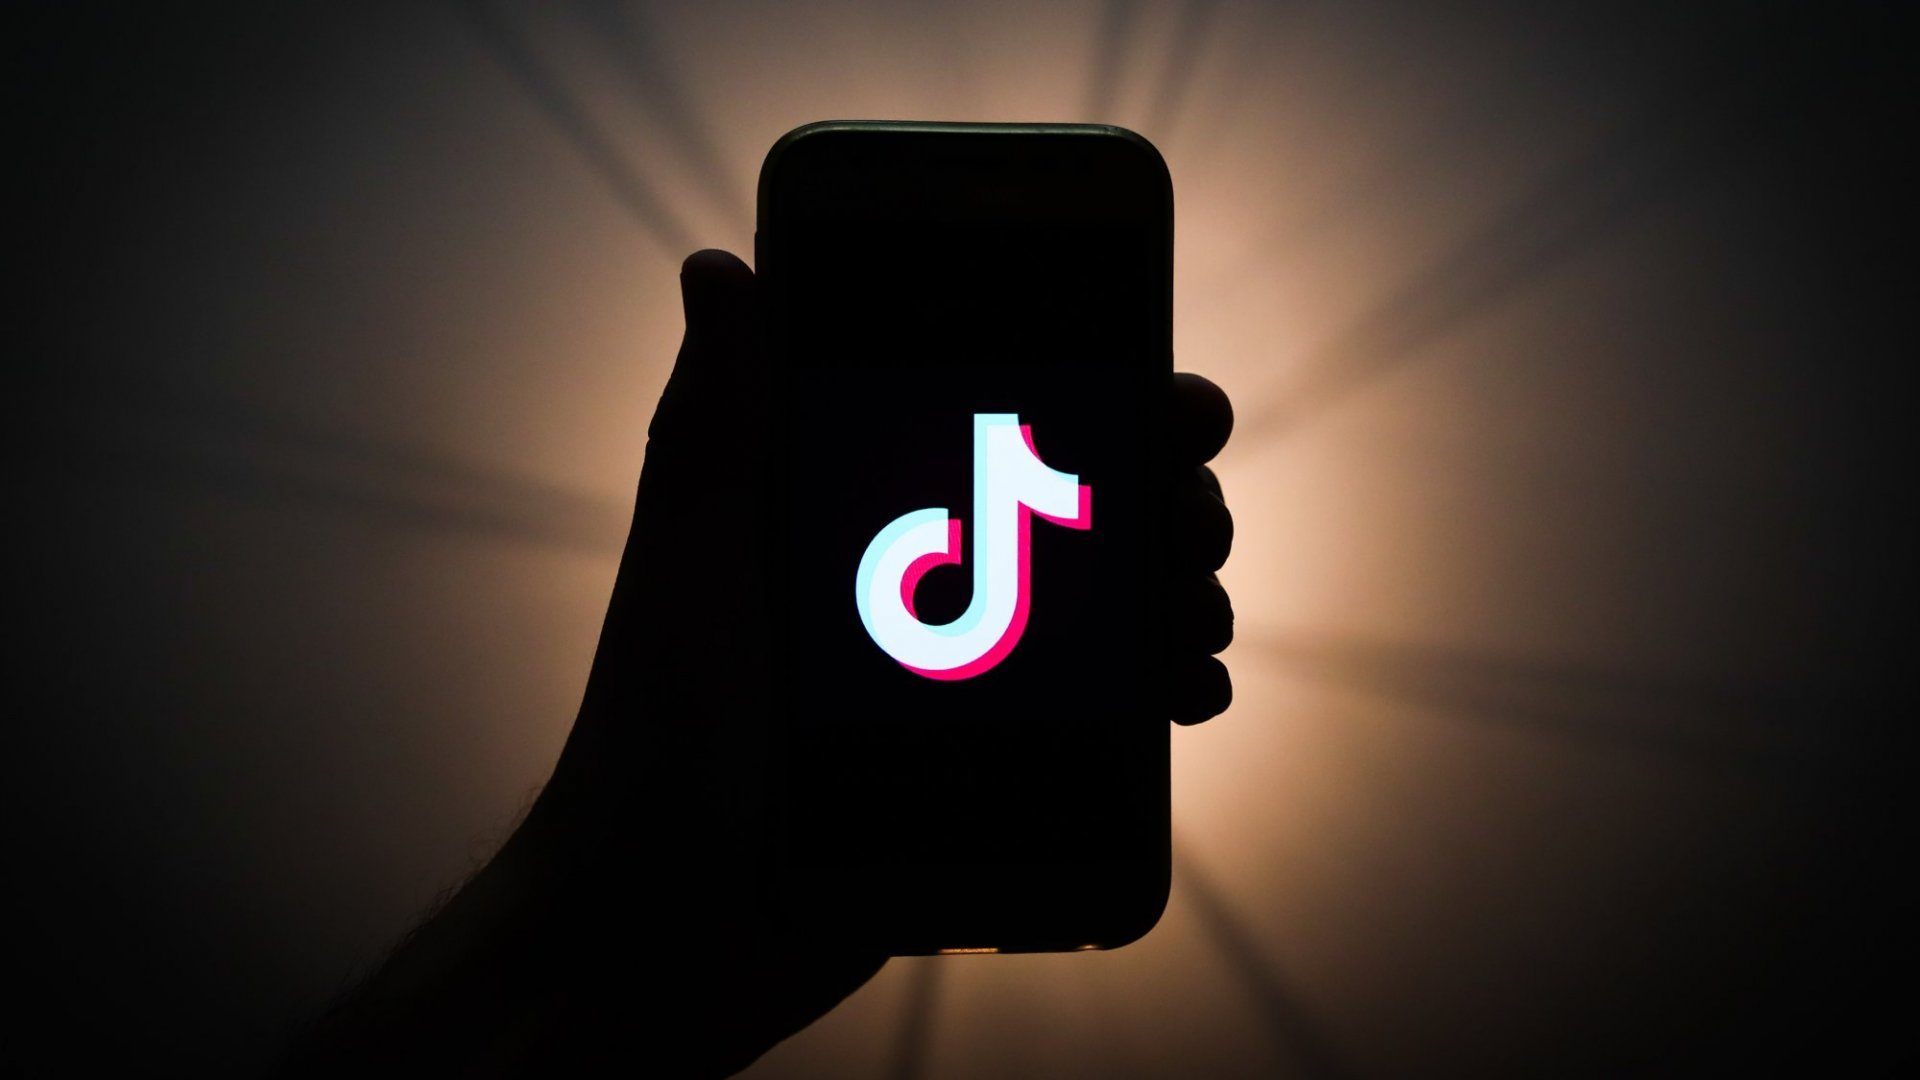 Microsoft's Move to Acquire TikTok Looks Risky. Why It's Actually Brilliant